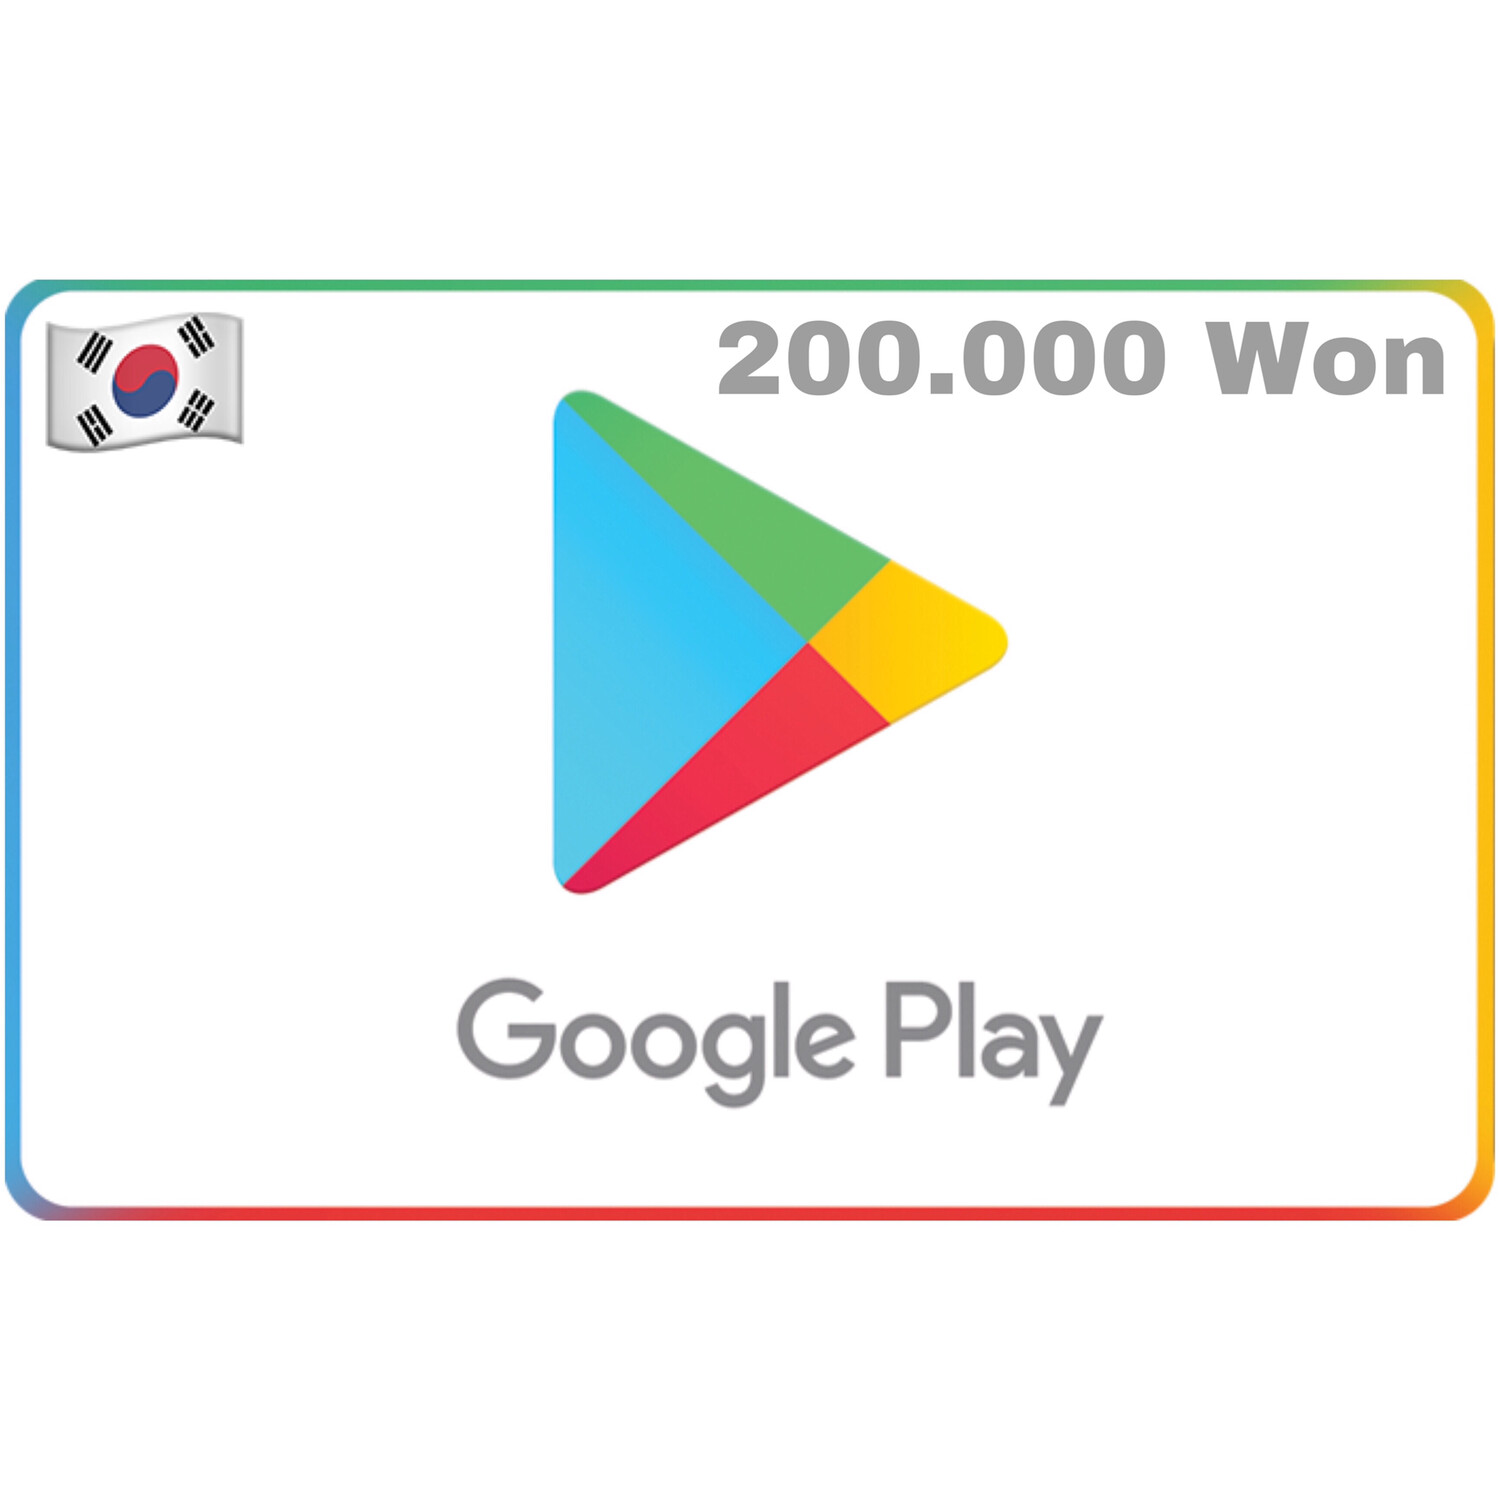 Google Play Korea 200,000 Won